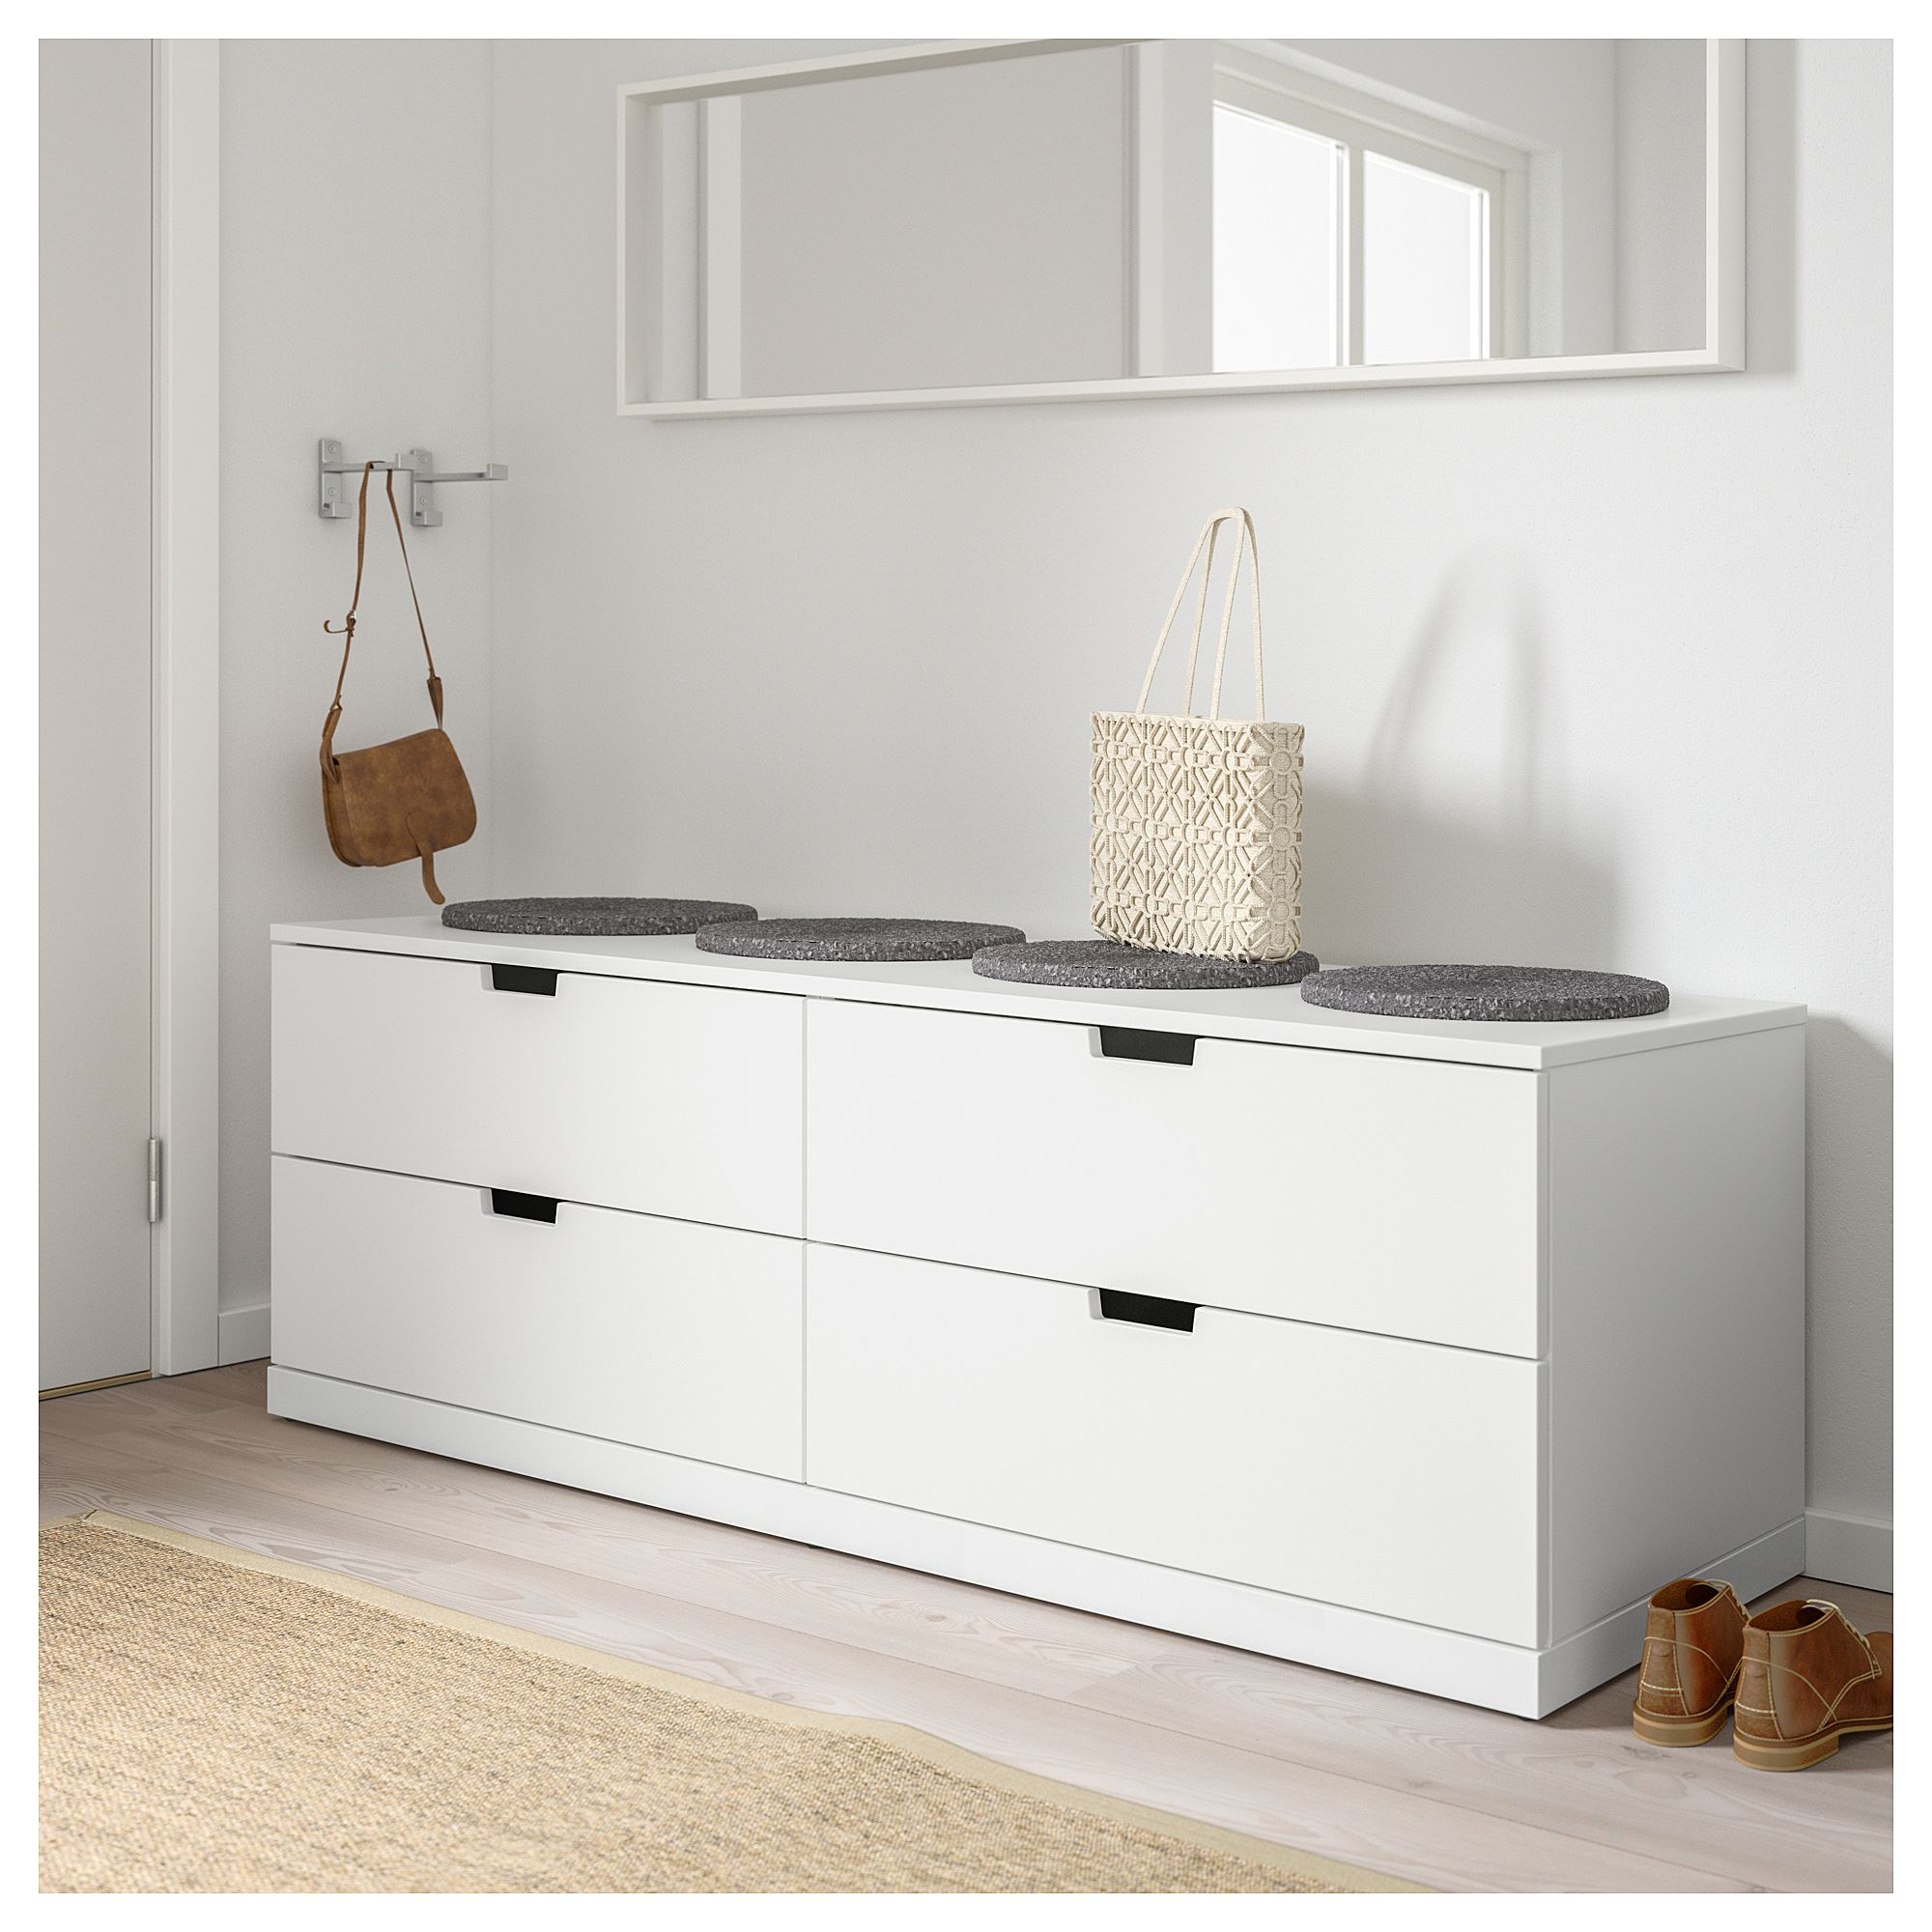 Hängegarderobe Ikea Ikea Nordli 4 Drawer Dresser White In 2019 For The Home 4